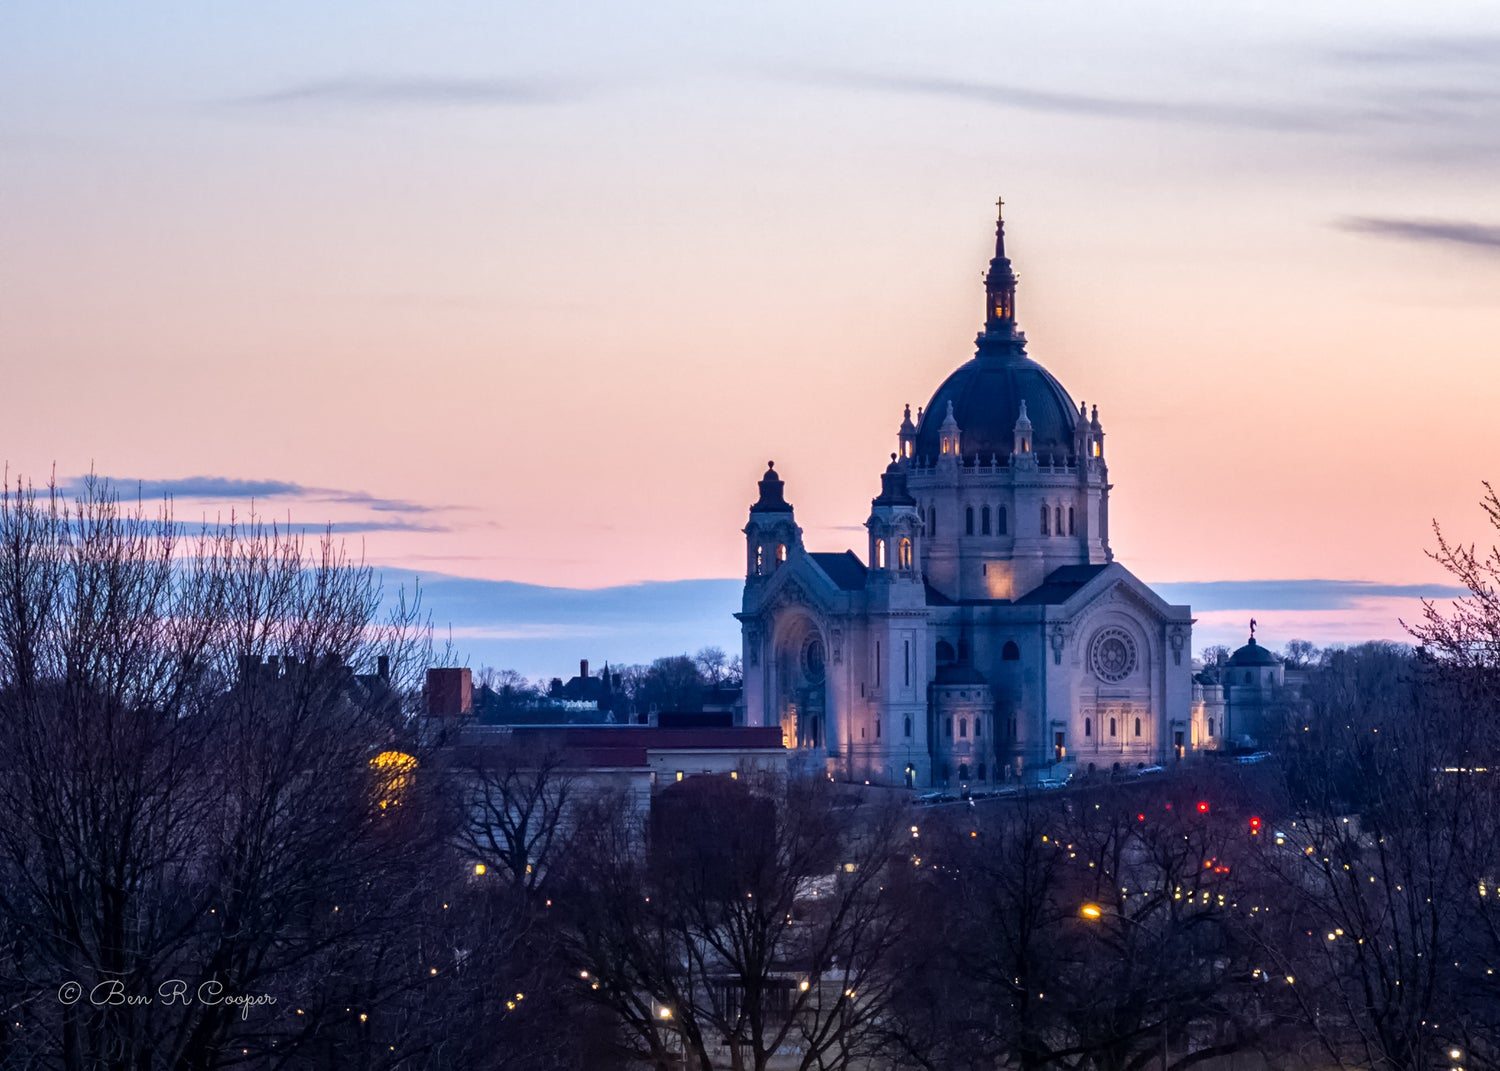 Cathedral of Saint Paul at Dusk